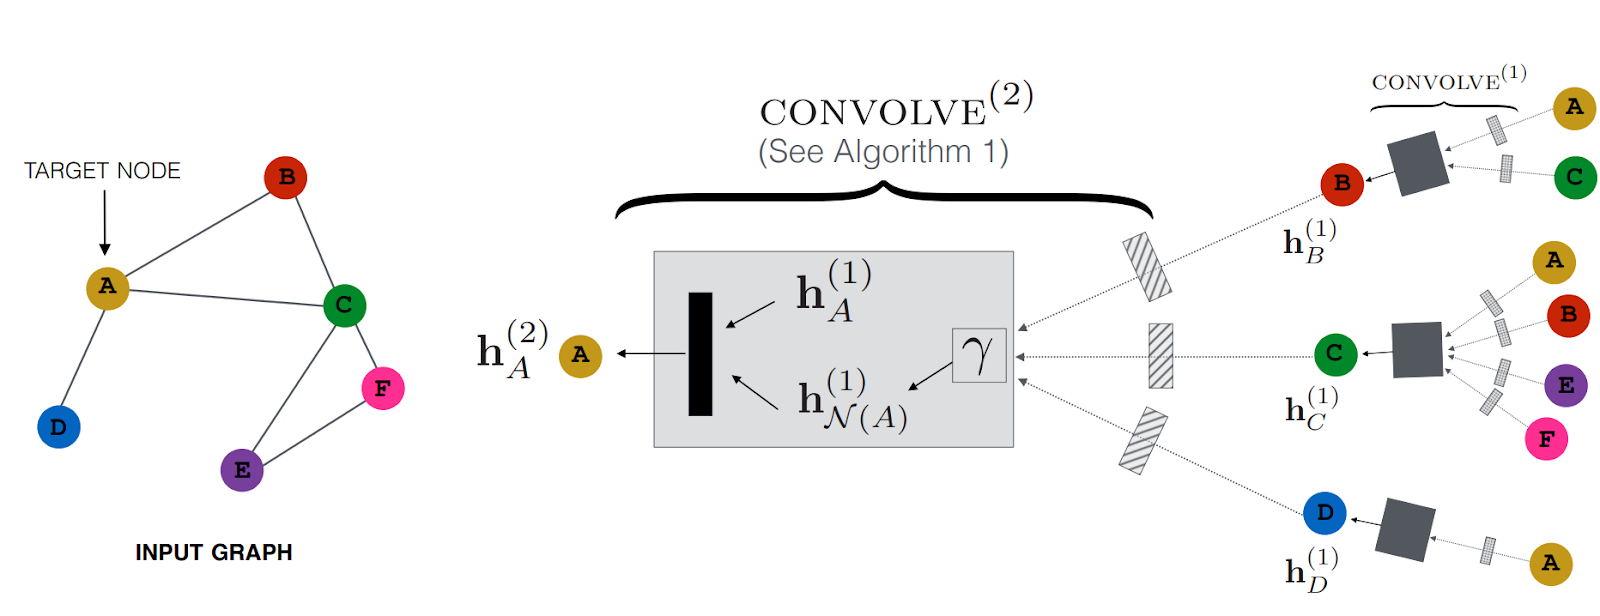 Illustration of GNN model architecture. Suppose that we run GNN to compute the representation of node A using 2-layer GNN, the computation is shown on the right, where every directed arrow between 2 nodes indicates a message that is passed from the source to the target. [Rex Ying et al. 2018]